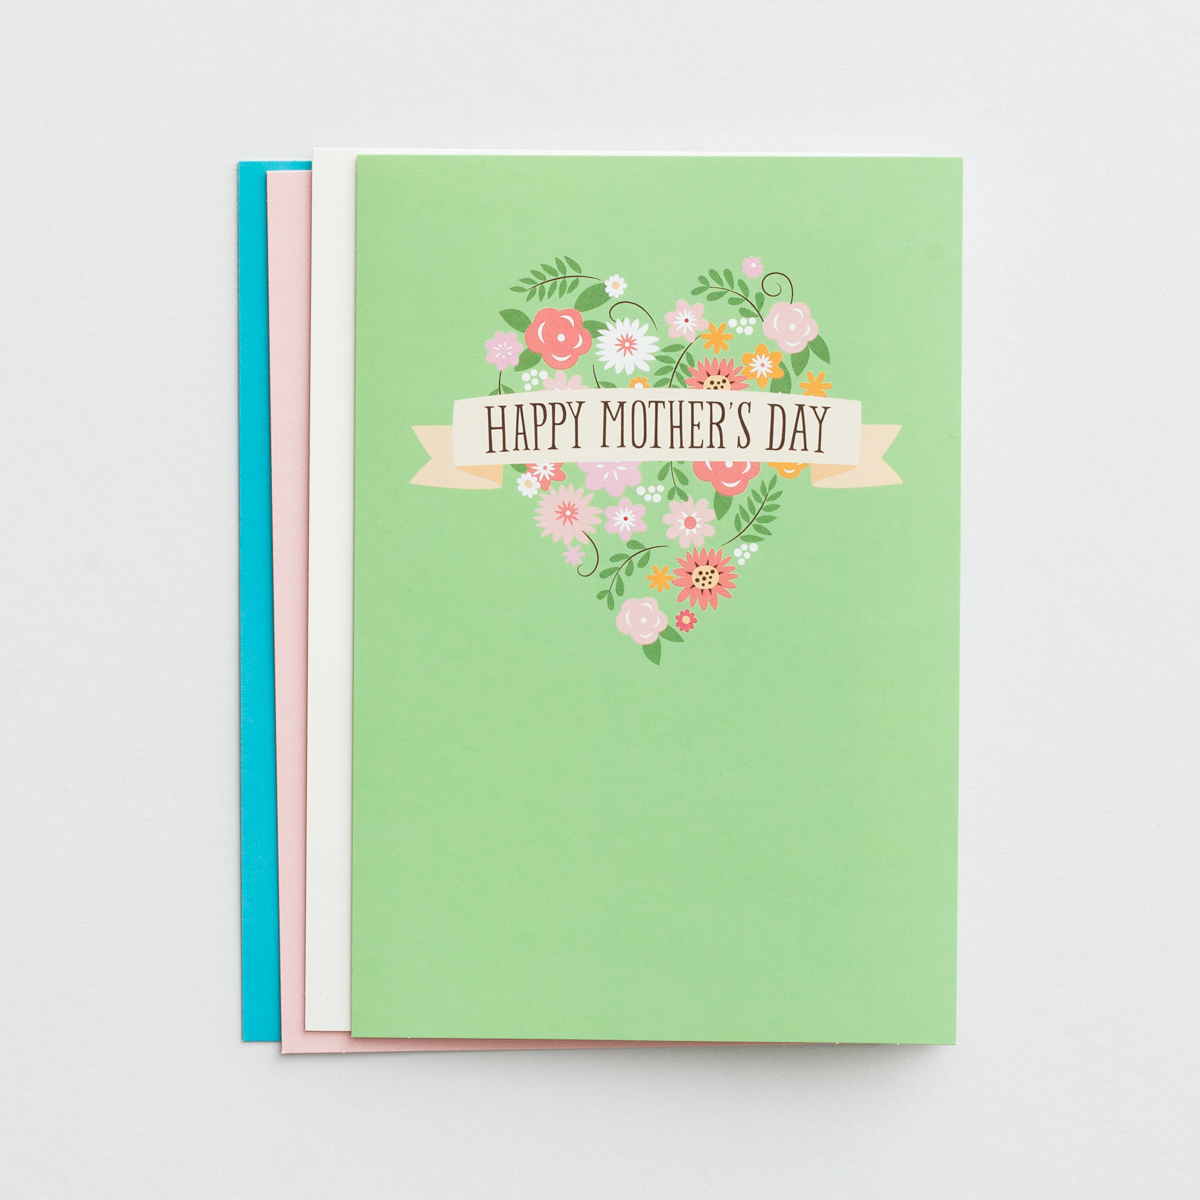 Mother's Day - Happy Mother's Day -